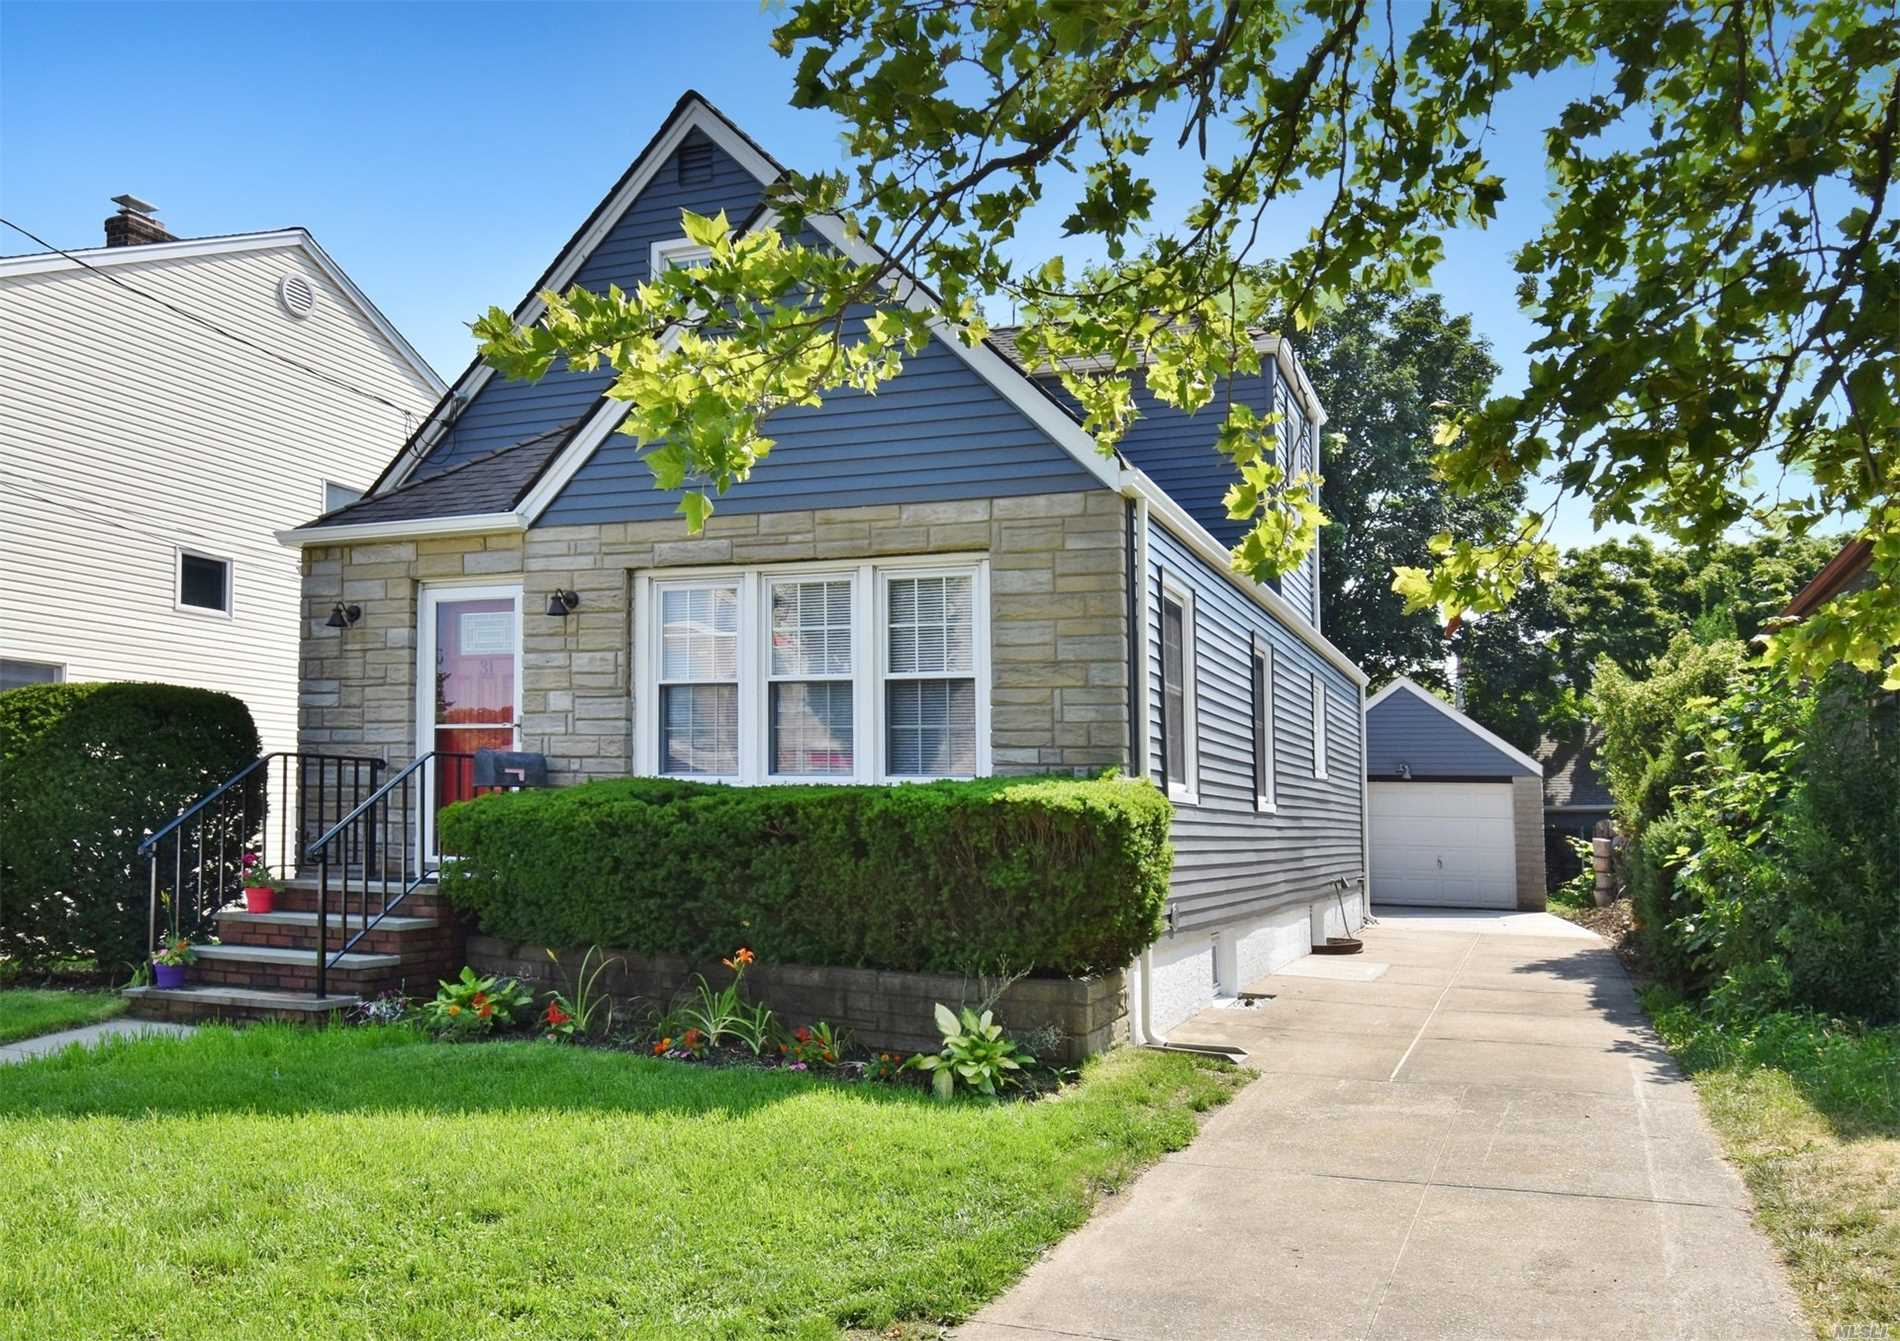 Beautifully Renovated 3 Br, 2 F.Ba. Cape. Total Renovation W/All New Hrwd Flrs Throughout, New Kit. W/Ss Appl., Granite Counters, 2 New F/Baths, Full Fin.Bsmt W/Egress Wndw. All New Plumbing, Elect., Cac, , New Rear Steps & New Patio, New Roof & Gutters On Garage, 3 Car Pvt Driveway. Homeowner Has All Co's And Permits. Close To Town, Schools, Lirr, Bus, Stores, Worship, And